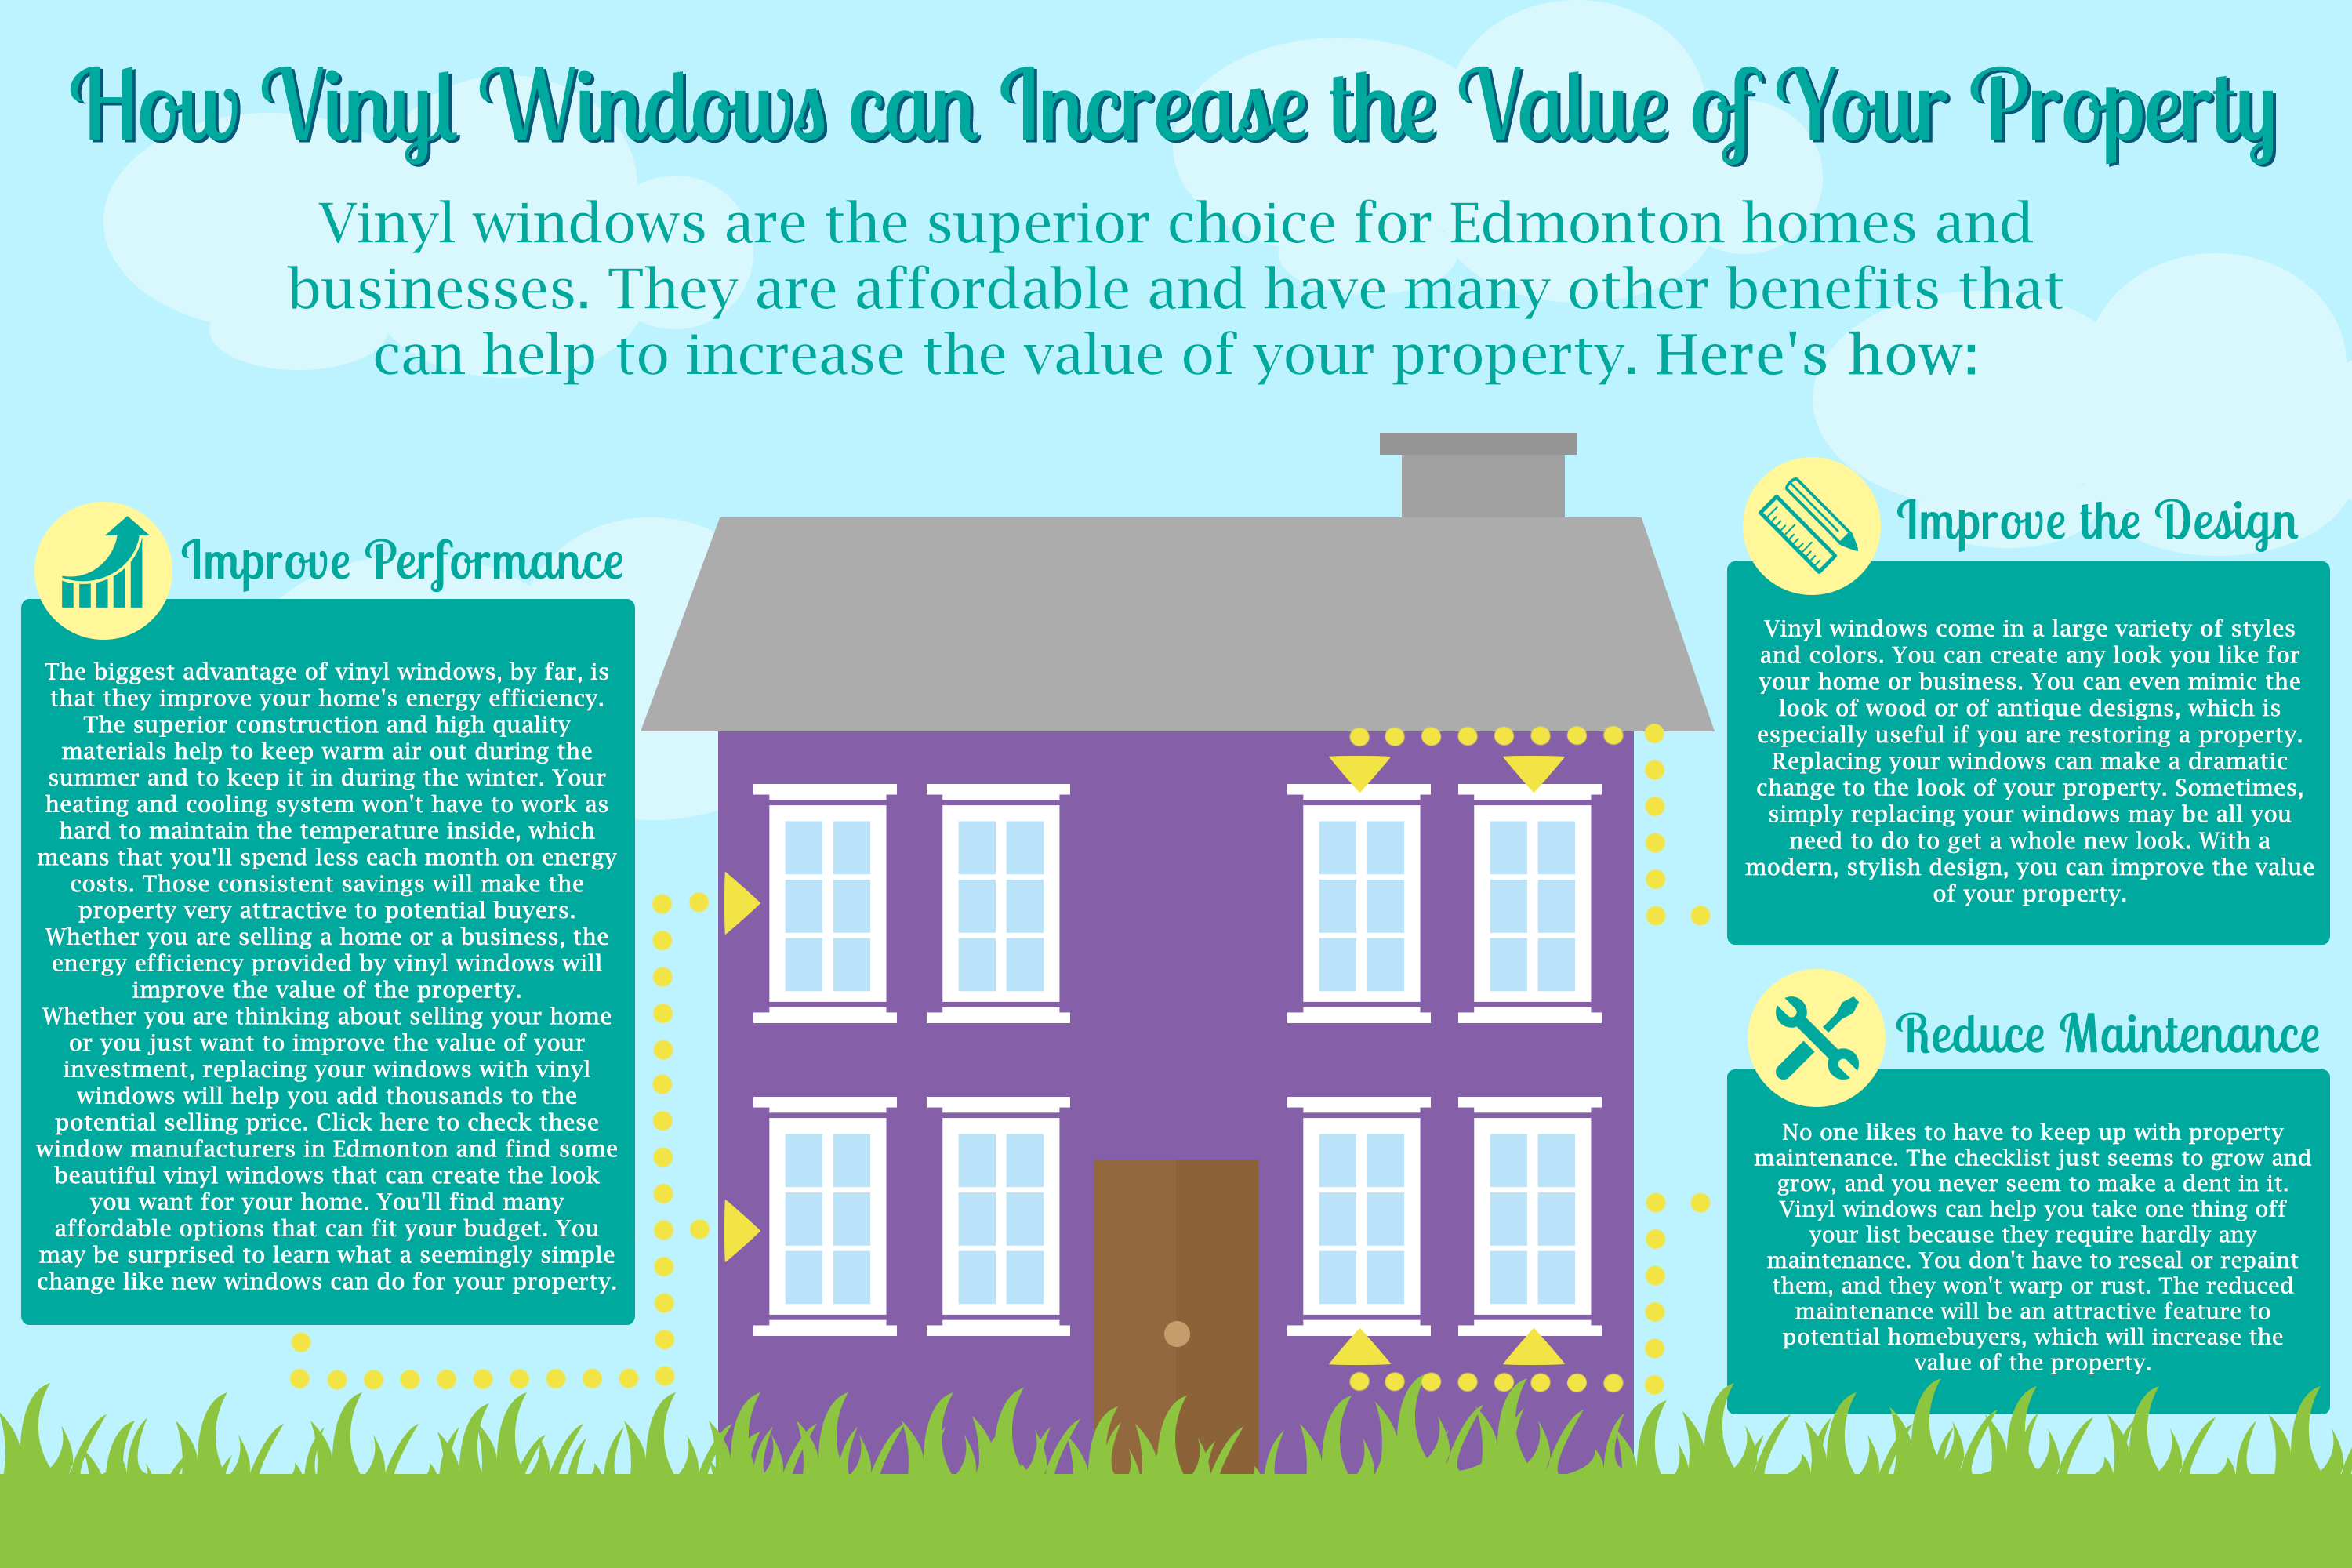 3 Ways to Increase the Value of Your Property with Vinyl Windows